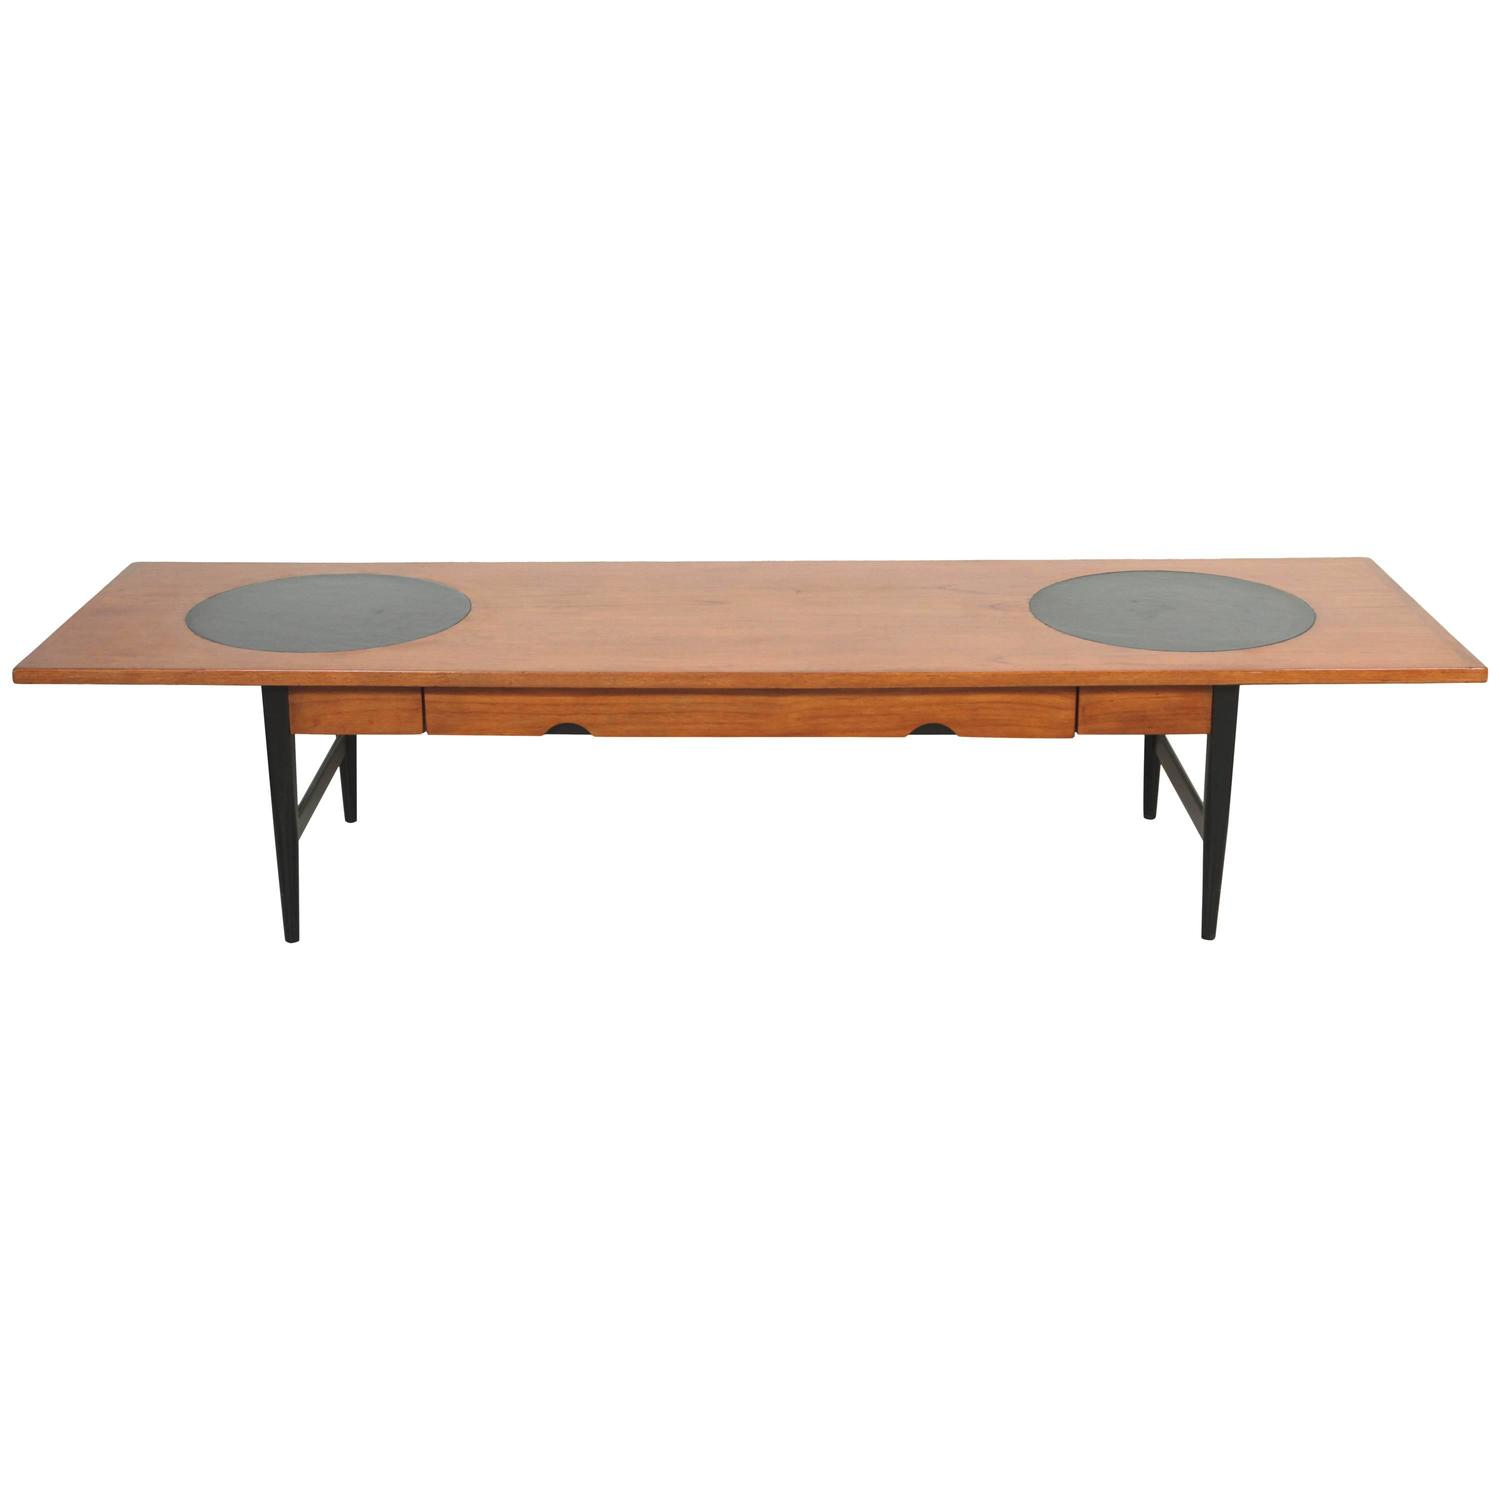 Long Coffee Table With Leather Inlay And Drawer For Sale At 1stdibs